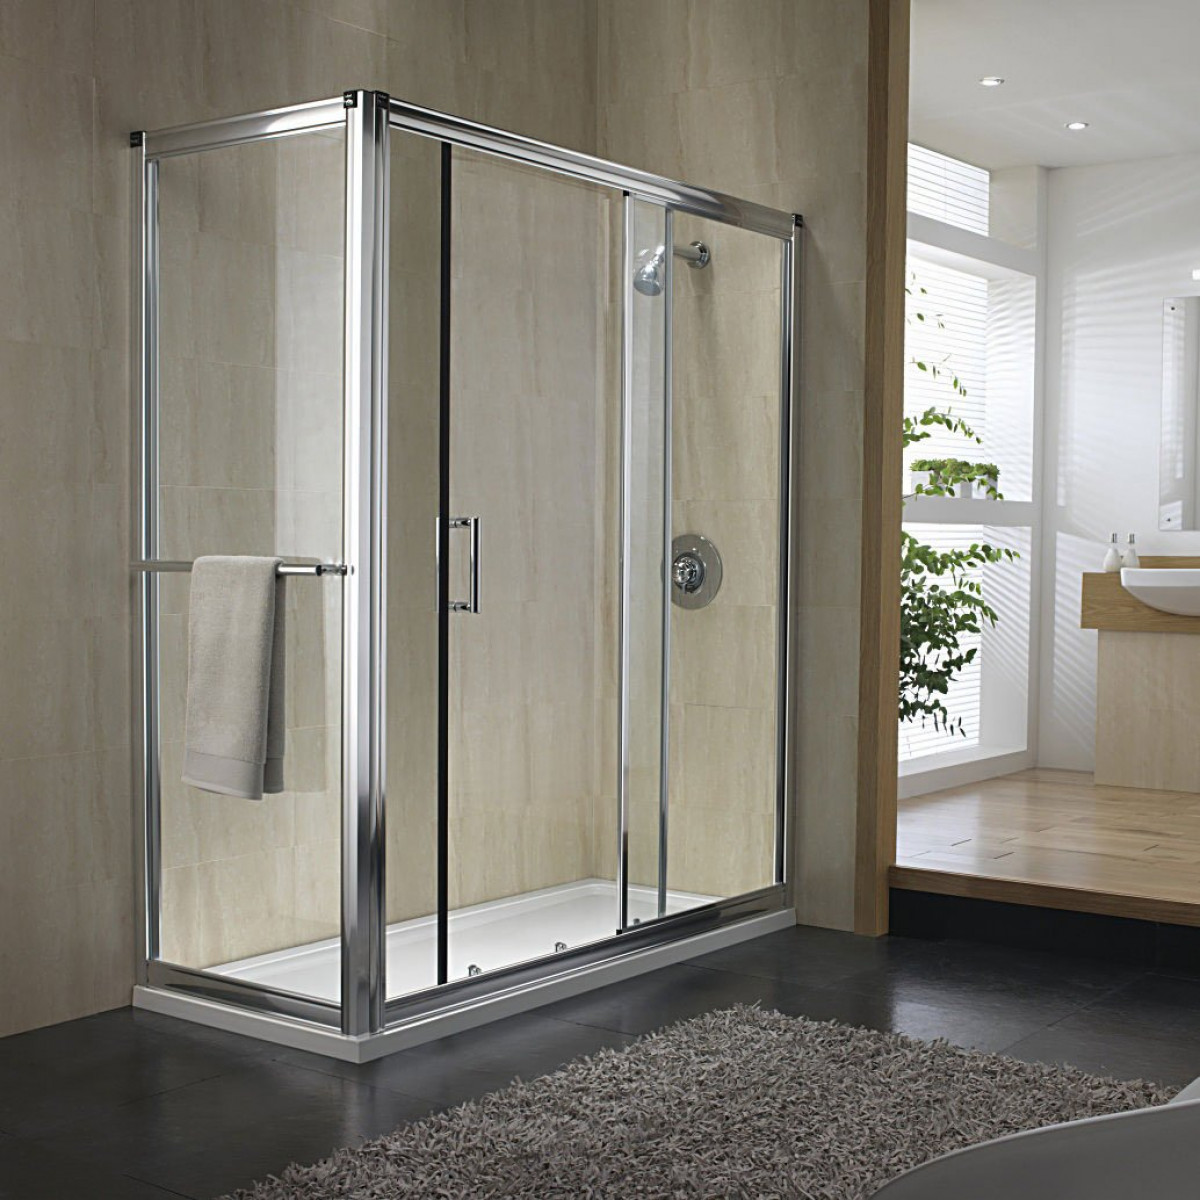 Twyford hydr8 1200mm sliding shower door h88500cp for 1200mm shower door sliding